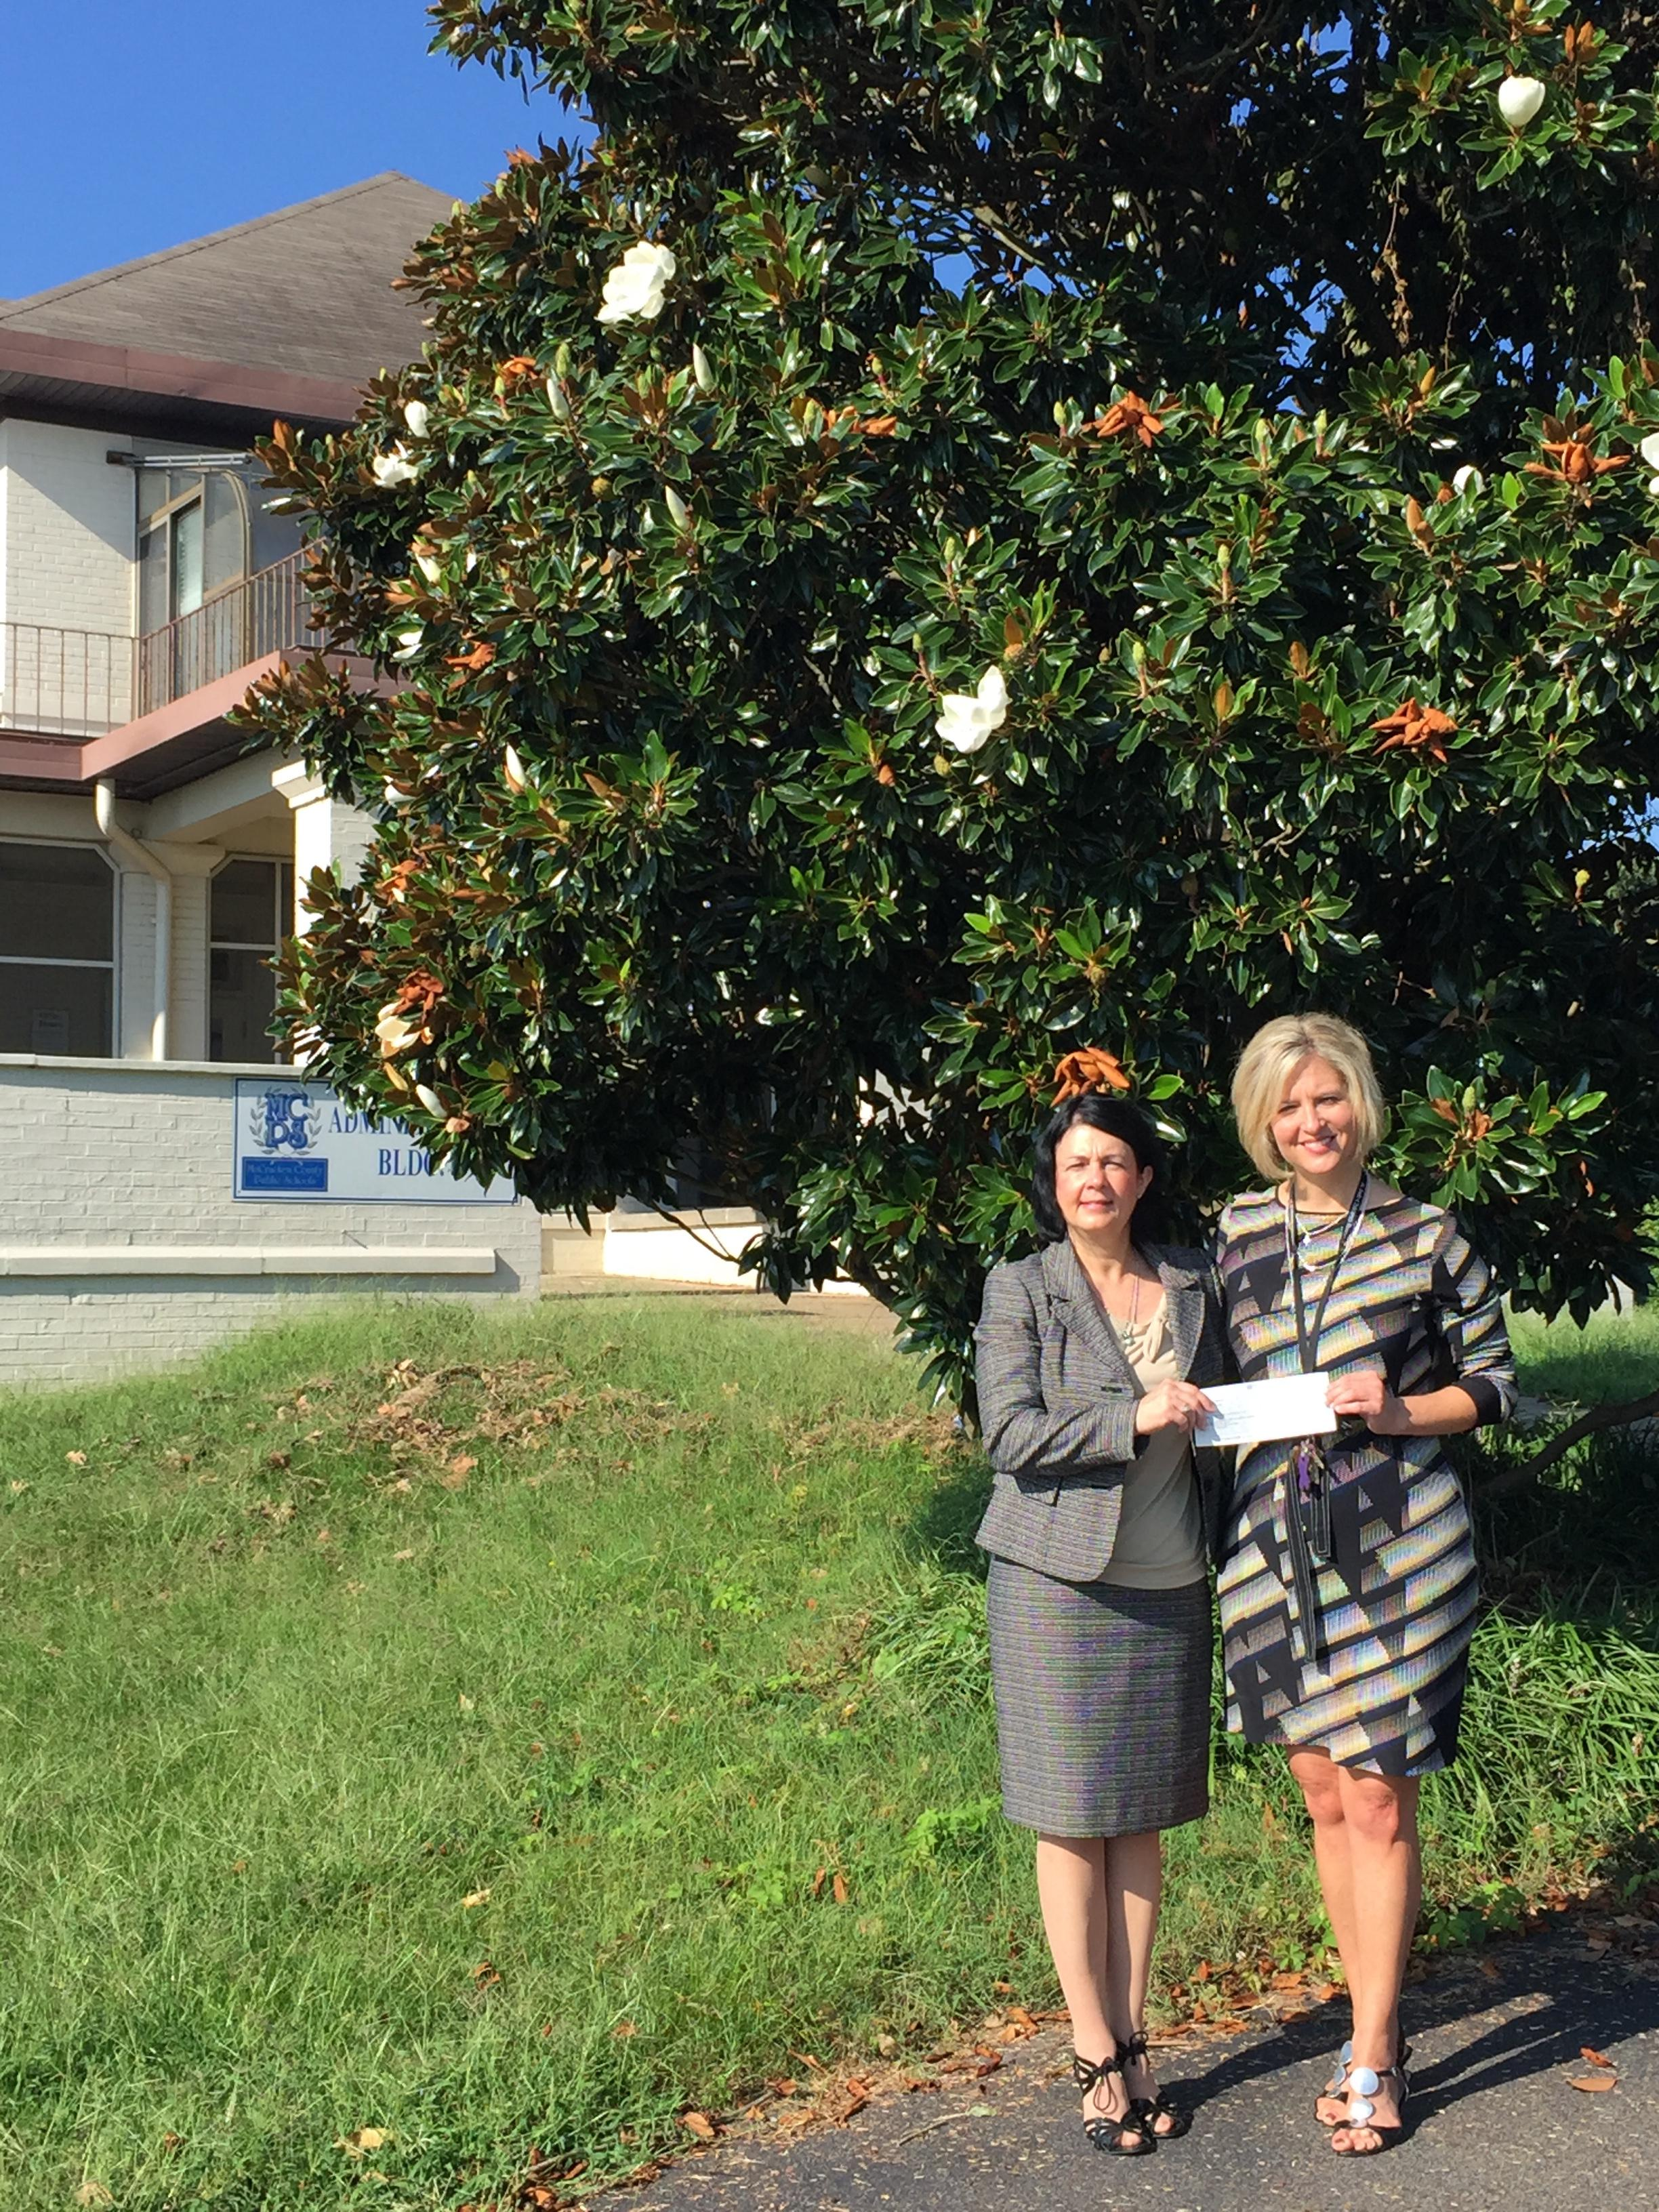 Presenting a contribution from Atmos Energy Corporation to The Merryman House Domestic Crisis Center Executive Director,